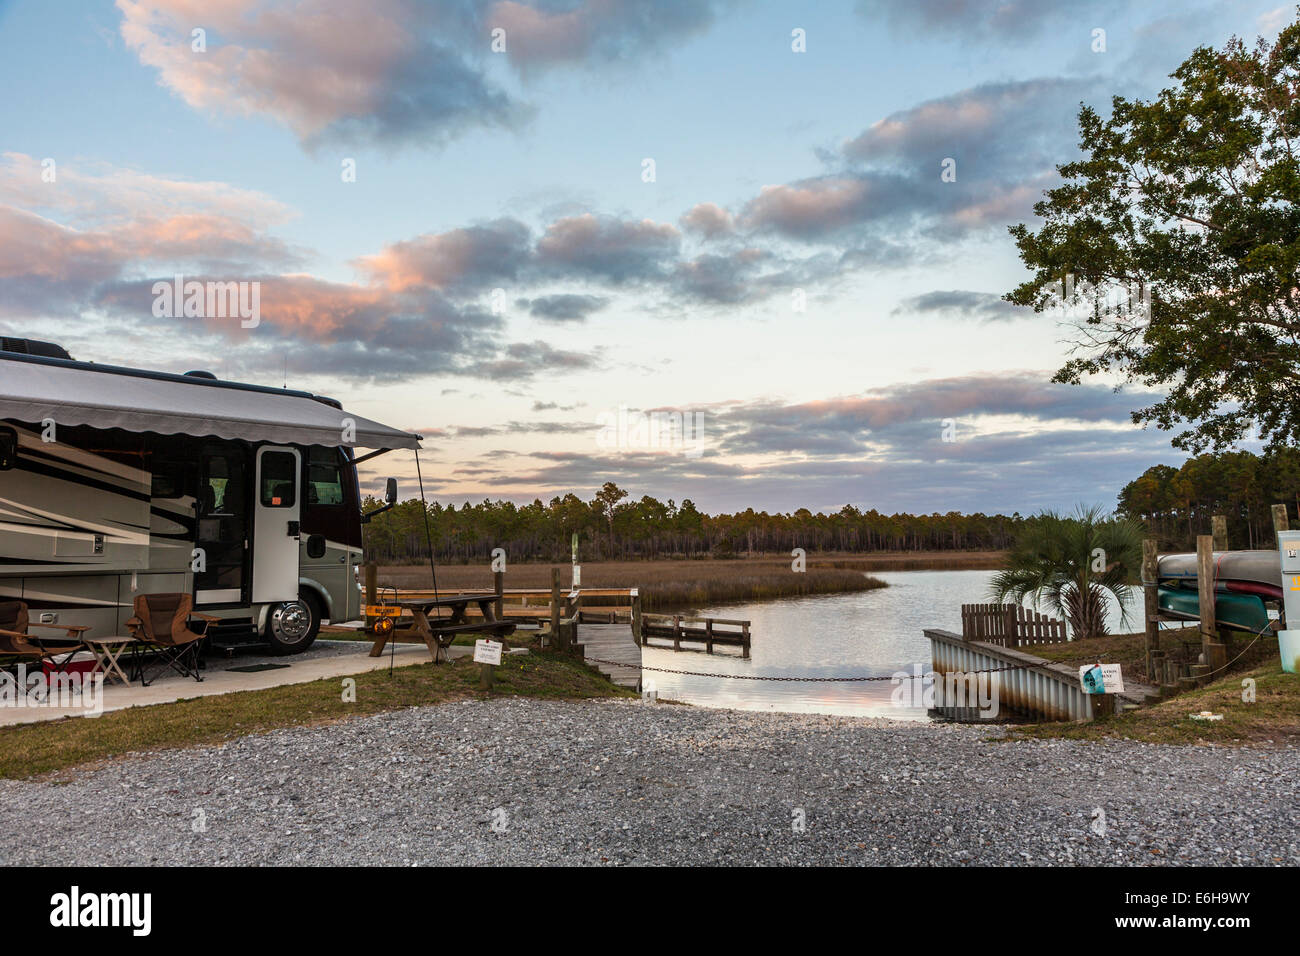 Motorhome set up for camping next to boat ramp for Indian Bayou at Avalon Landing RV Park in Pensacola, Florida - Stock Image